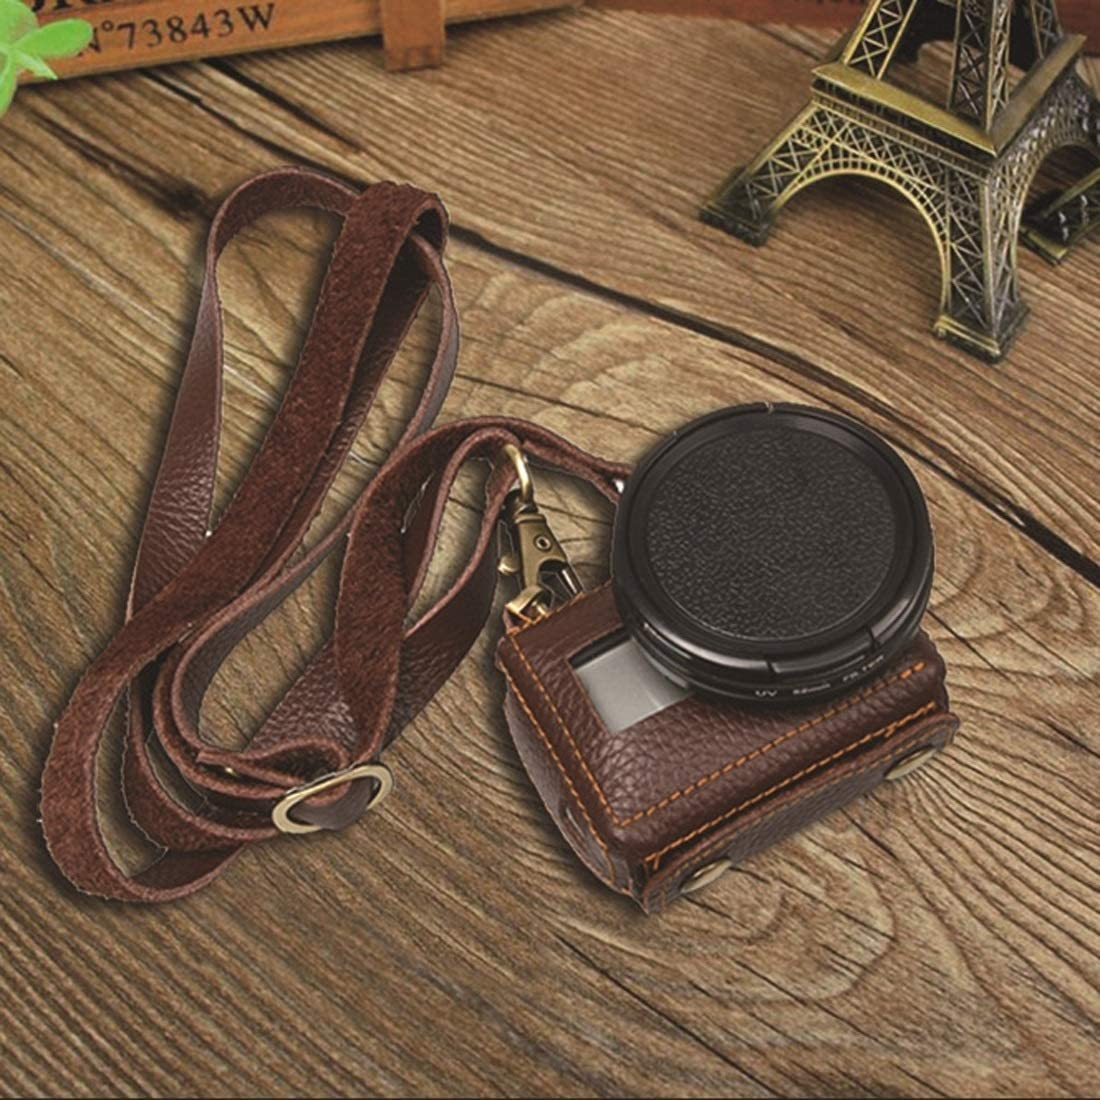 Color : Black CHENYANTUB Camera Accessories for GoPro HERO4 Litchi Texture Genuine Leather Protective Case with Sling Black